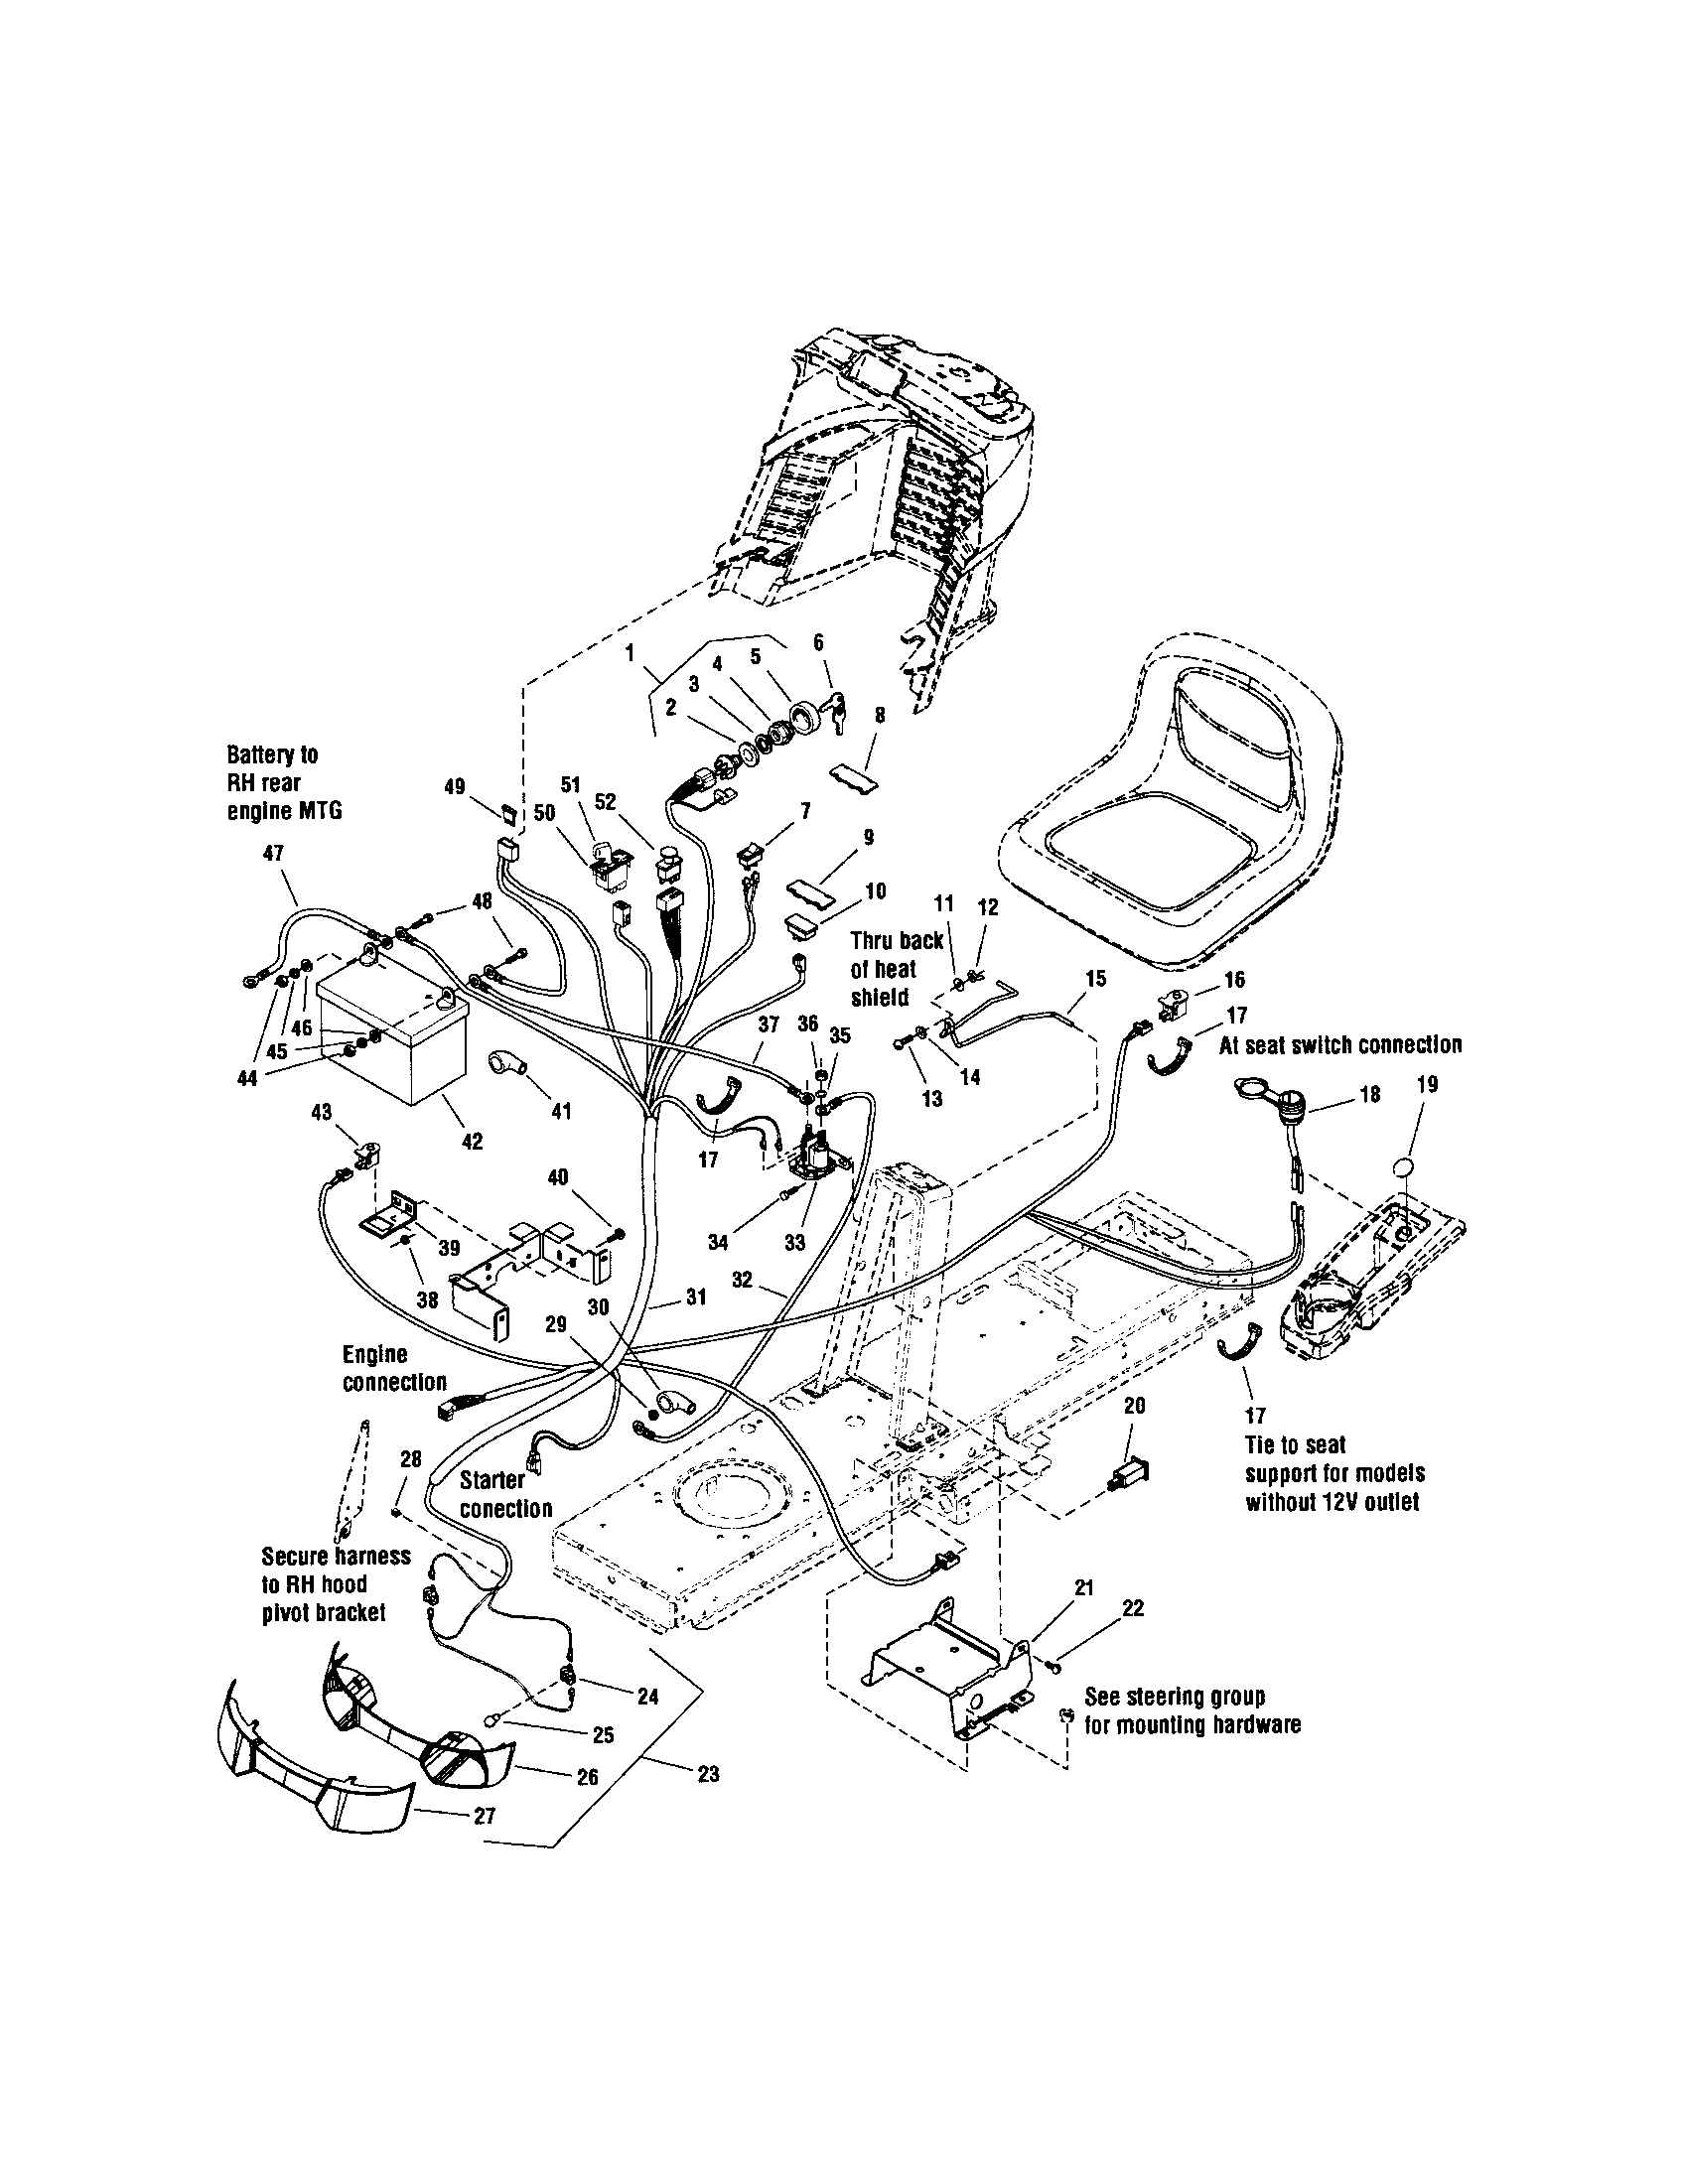 ELECTRICAL Diagram & Parts List for Model 2690441 Snapper